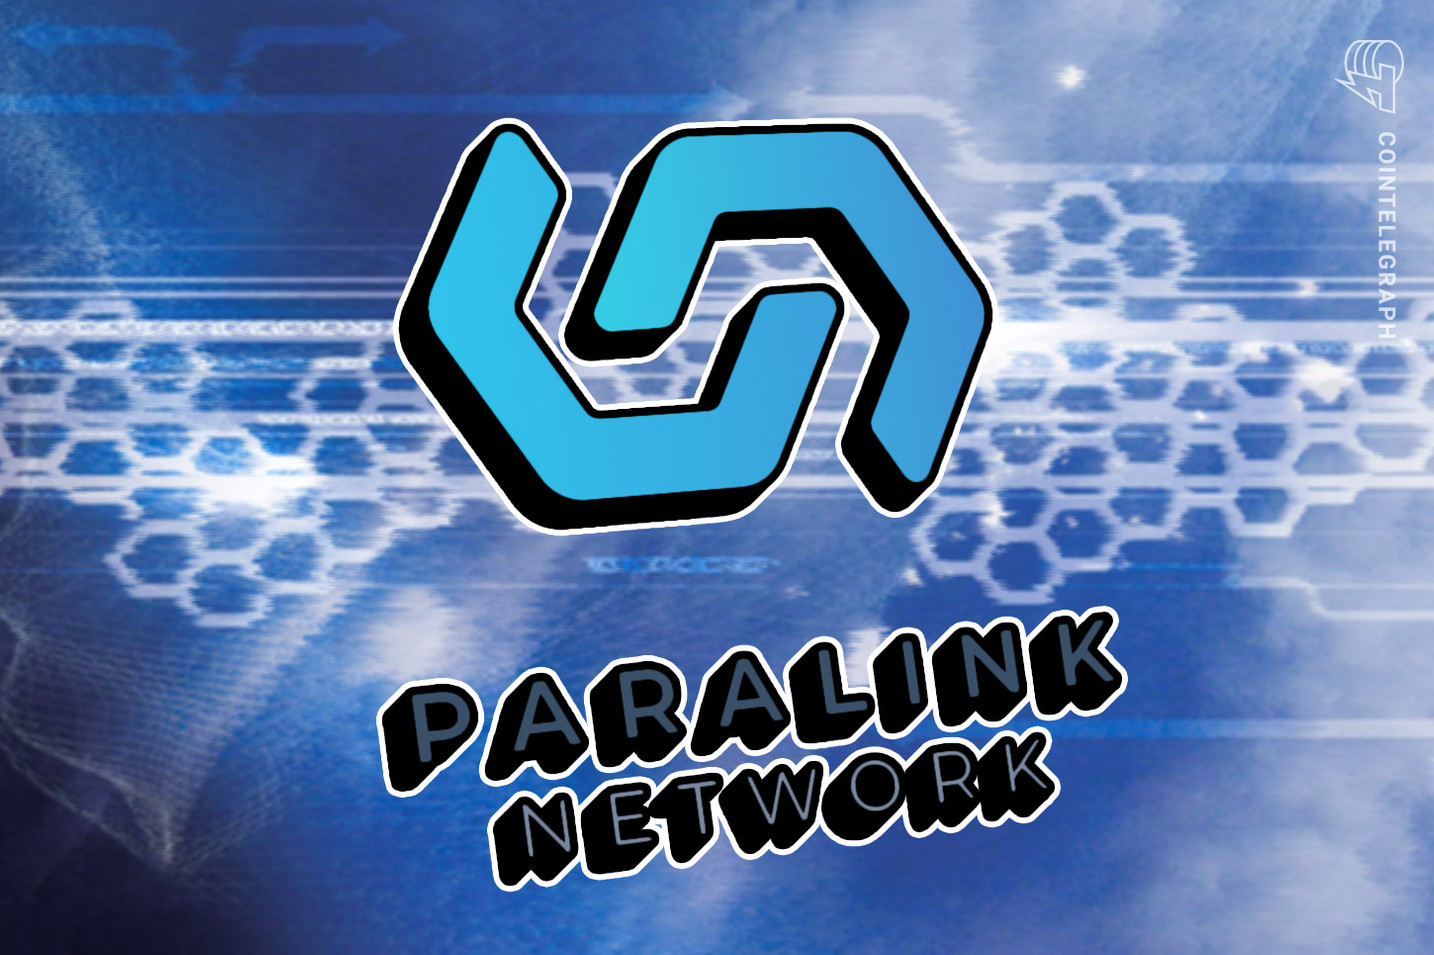 Paralink Network raised $2.8 million for decentralized oracle platform